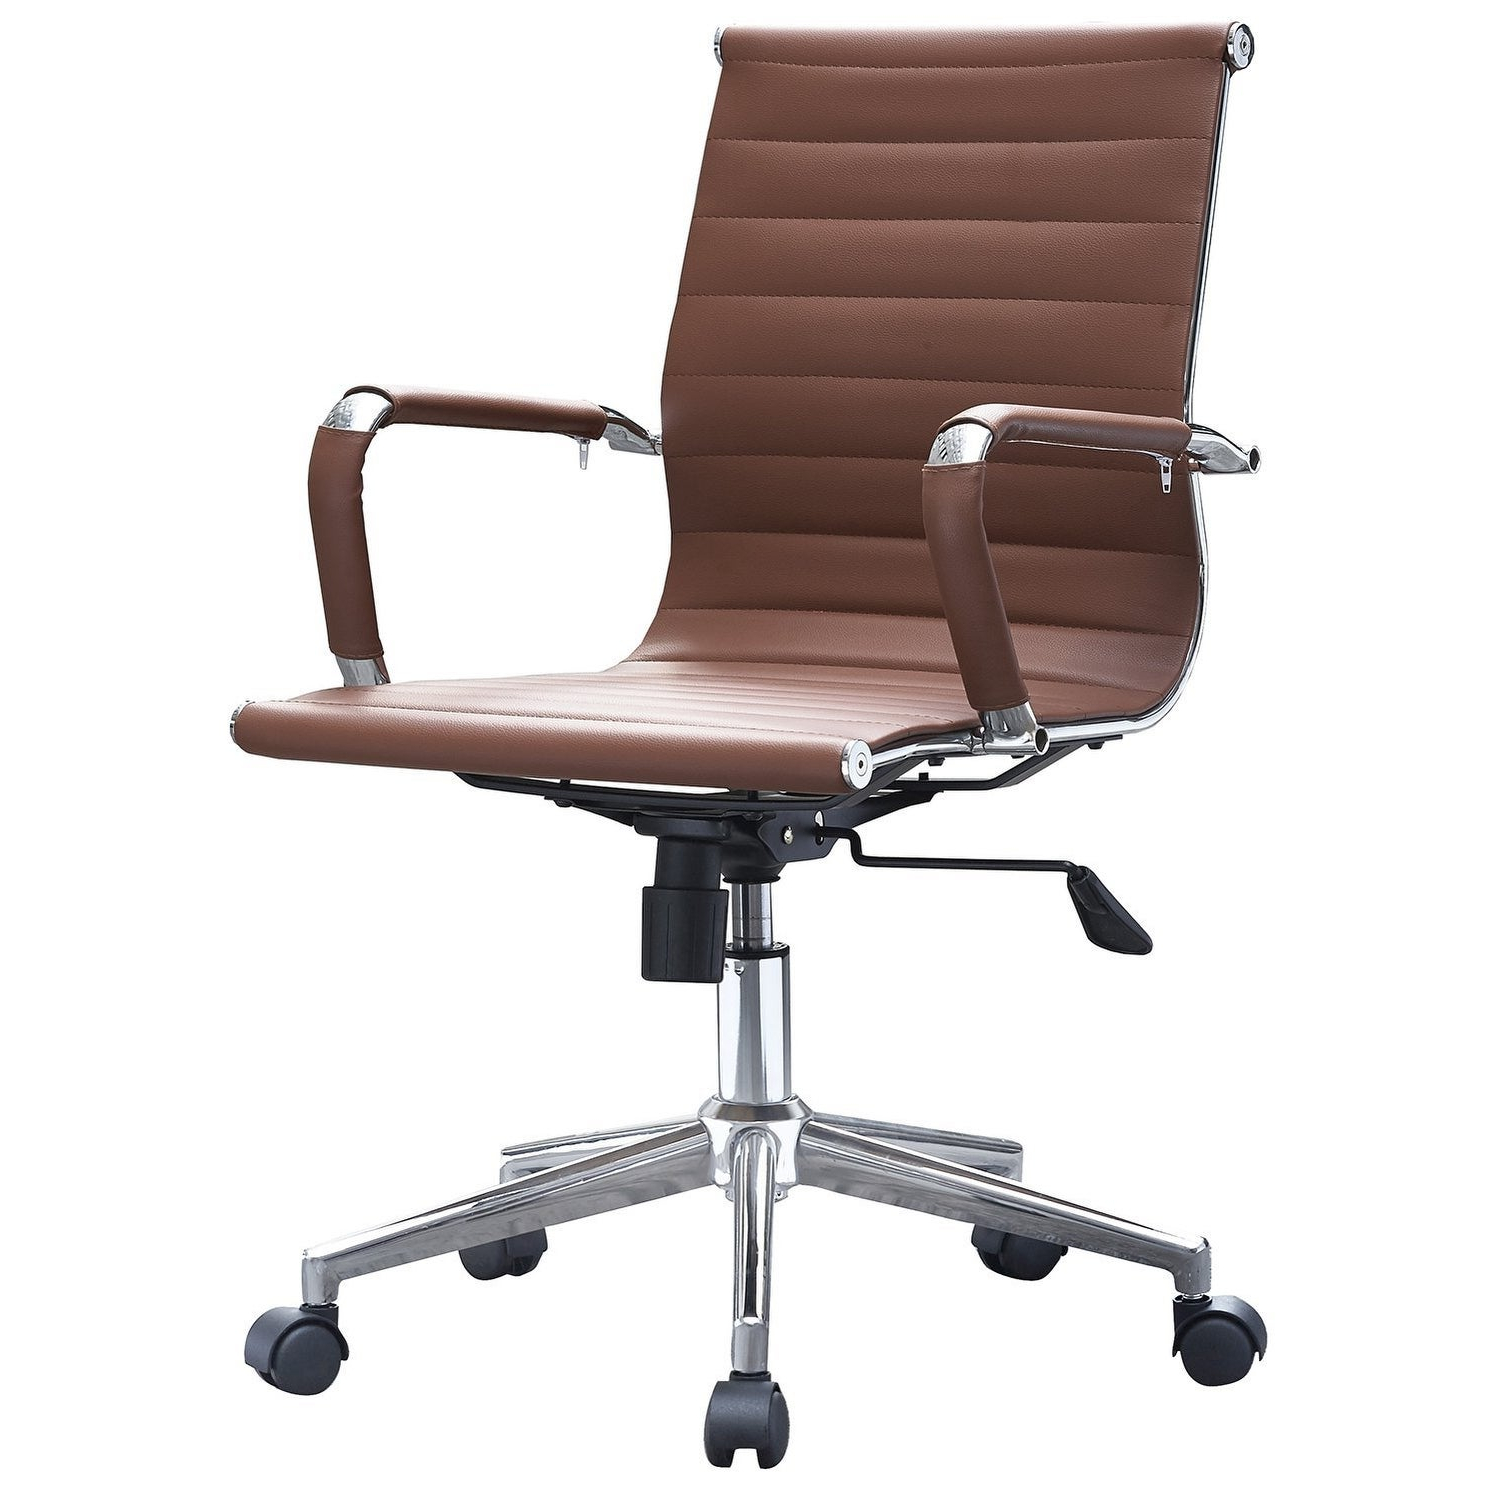 Office Chairs 9fdy 2xhome Brown Mid Back Pu Leather Executive Office Chair Ribbed Tilt Conference Room Boss Home Work Desk Task Guest with Arms